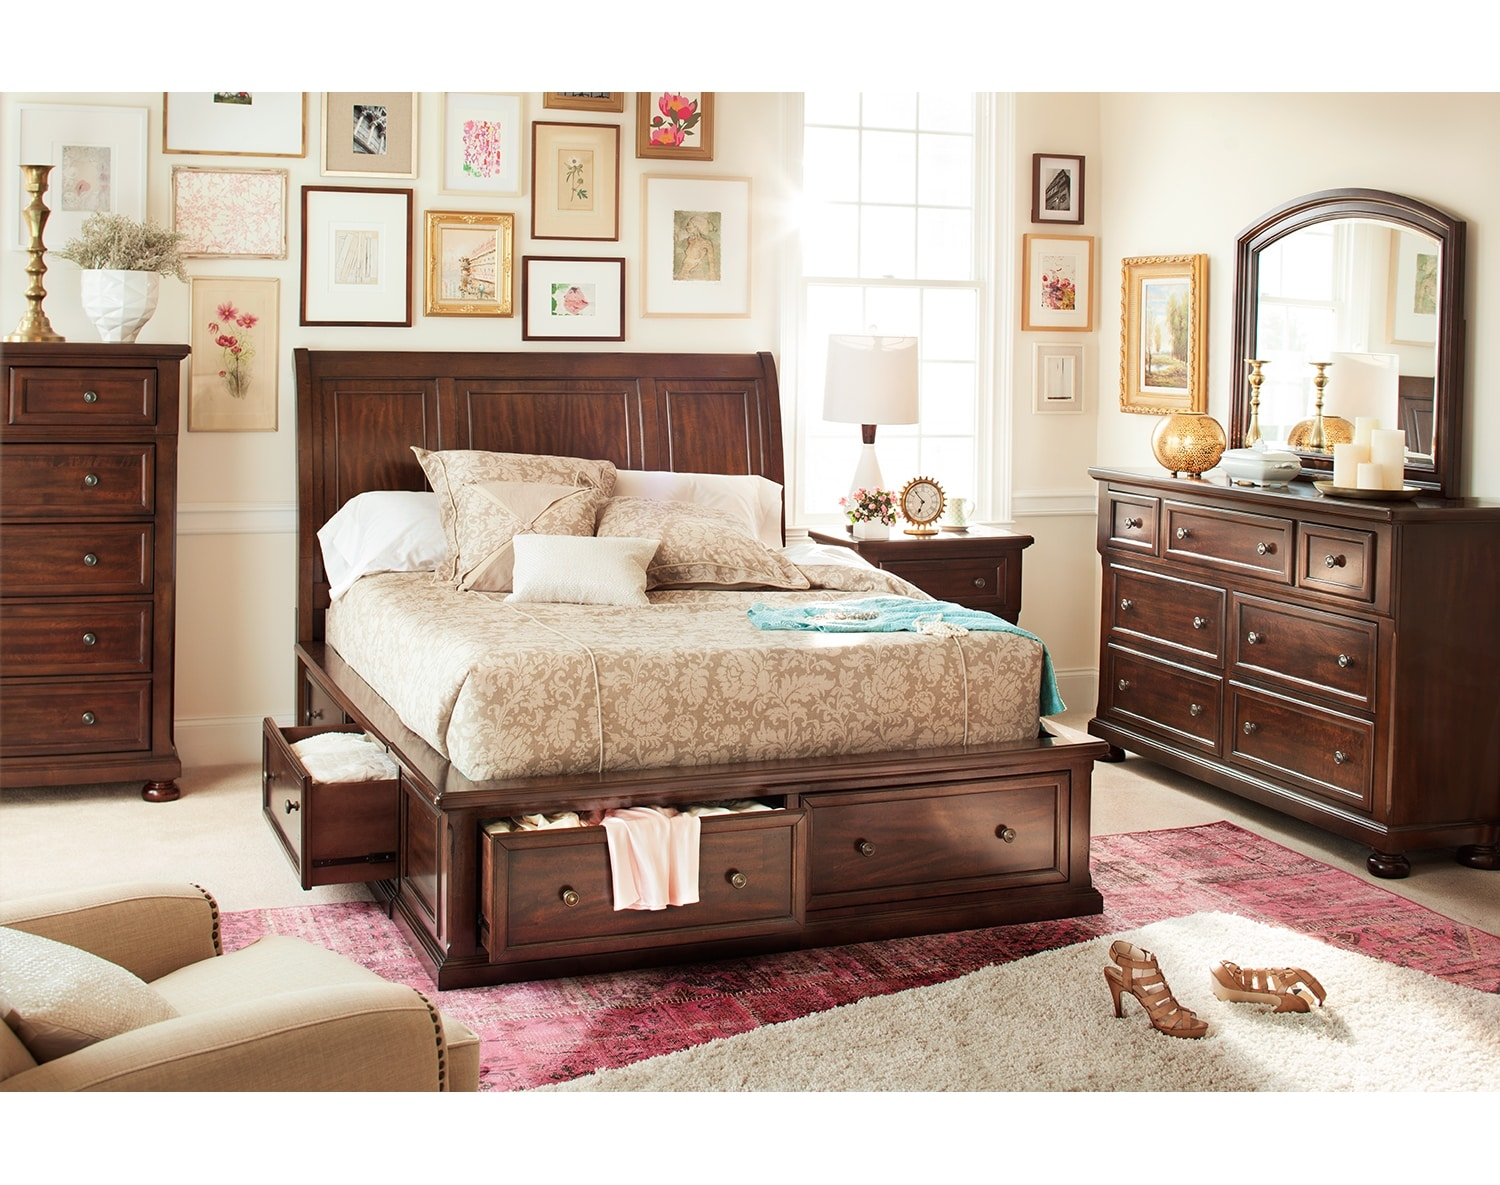 city more check set value design at sets bedroom pin furniture interior